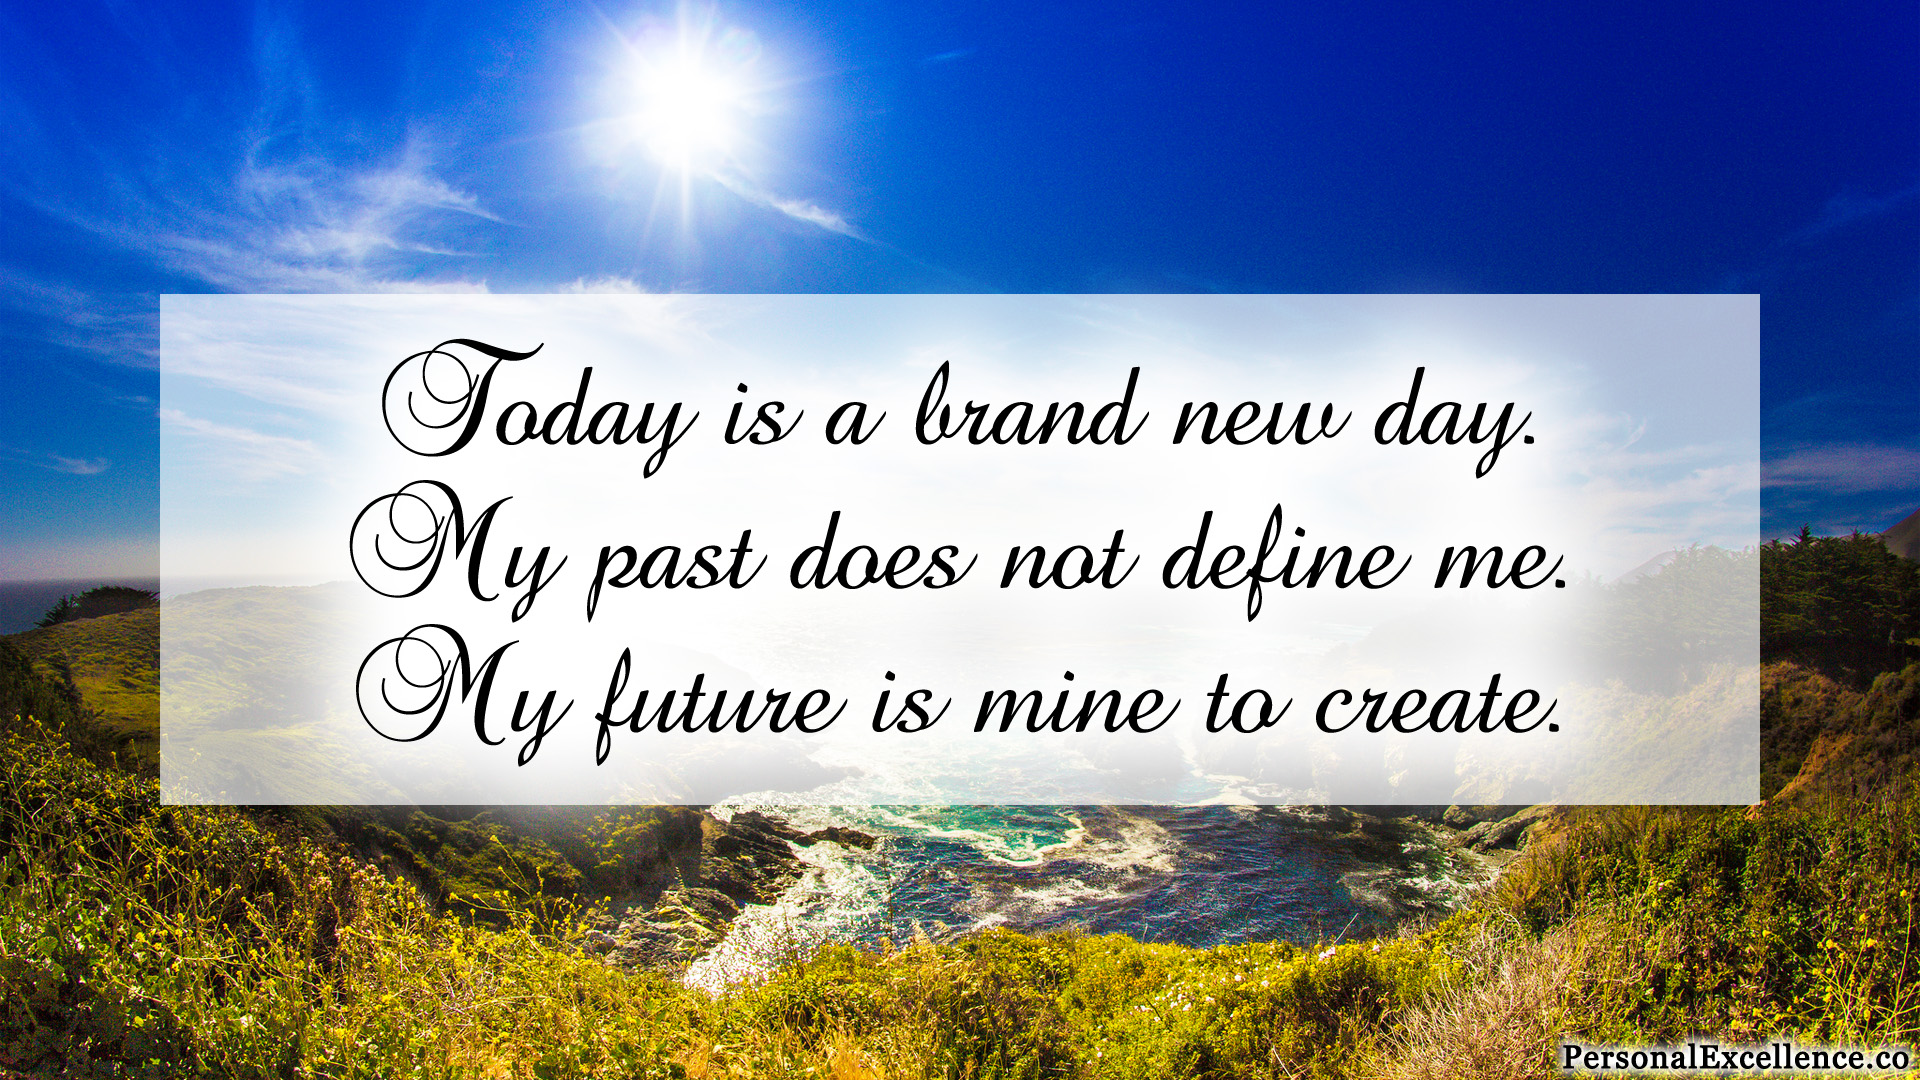 15 gorgeous wallpapers with positive affirmations | personal excellence